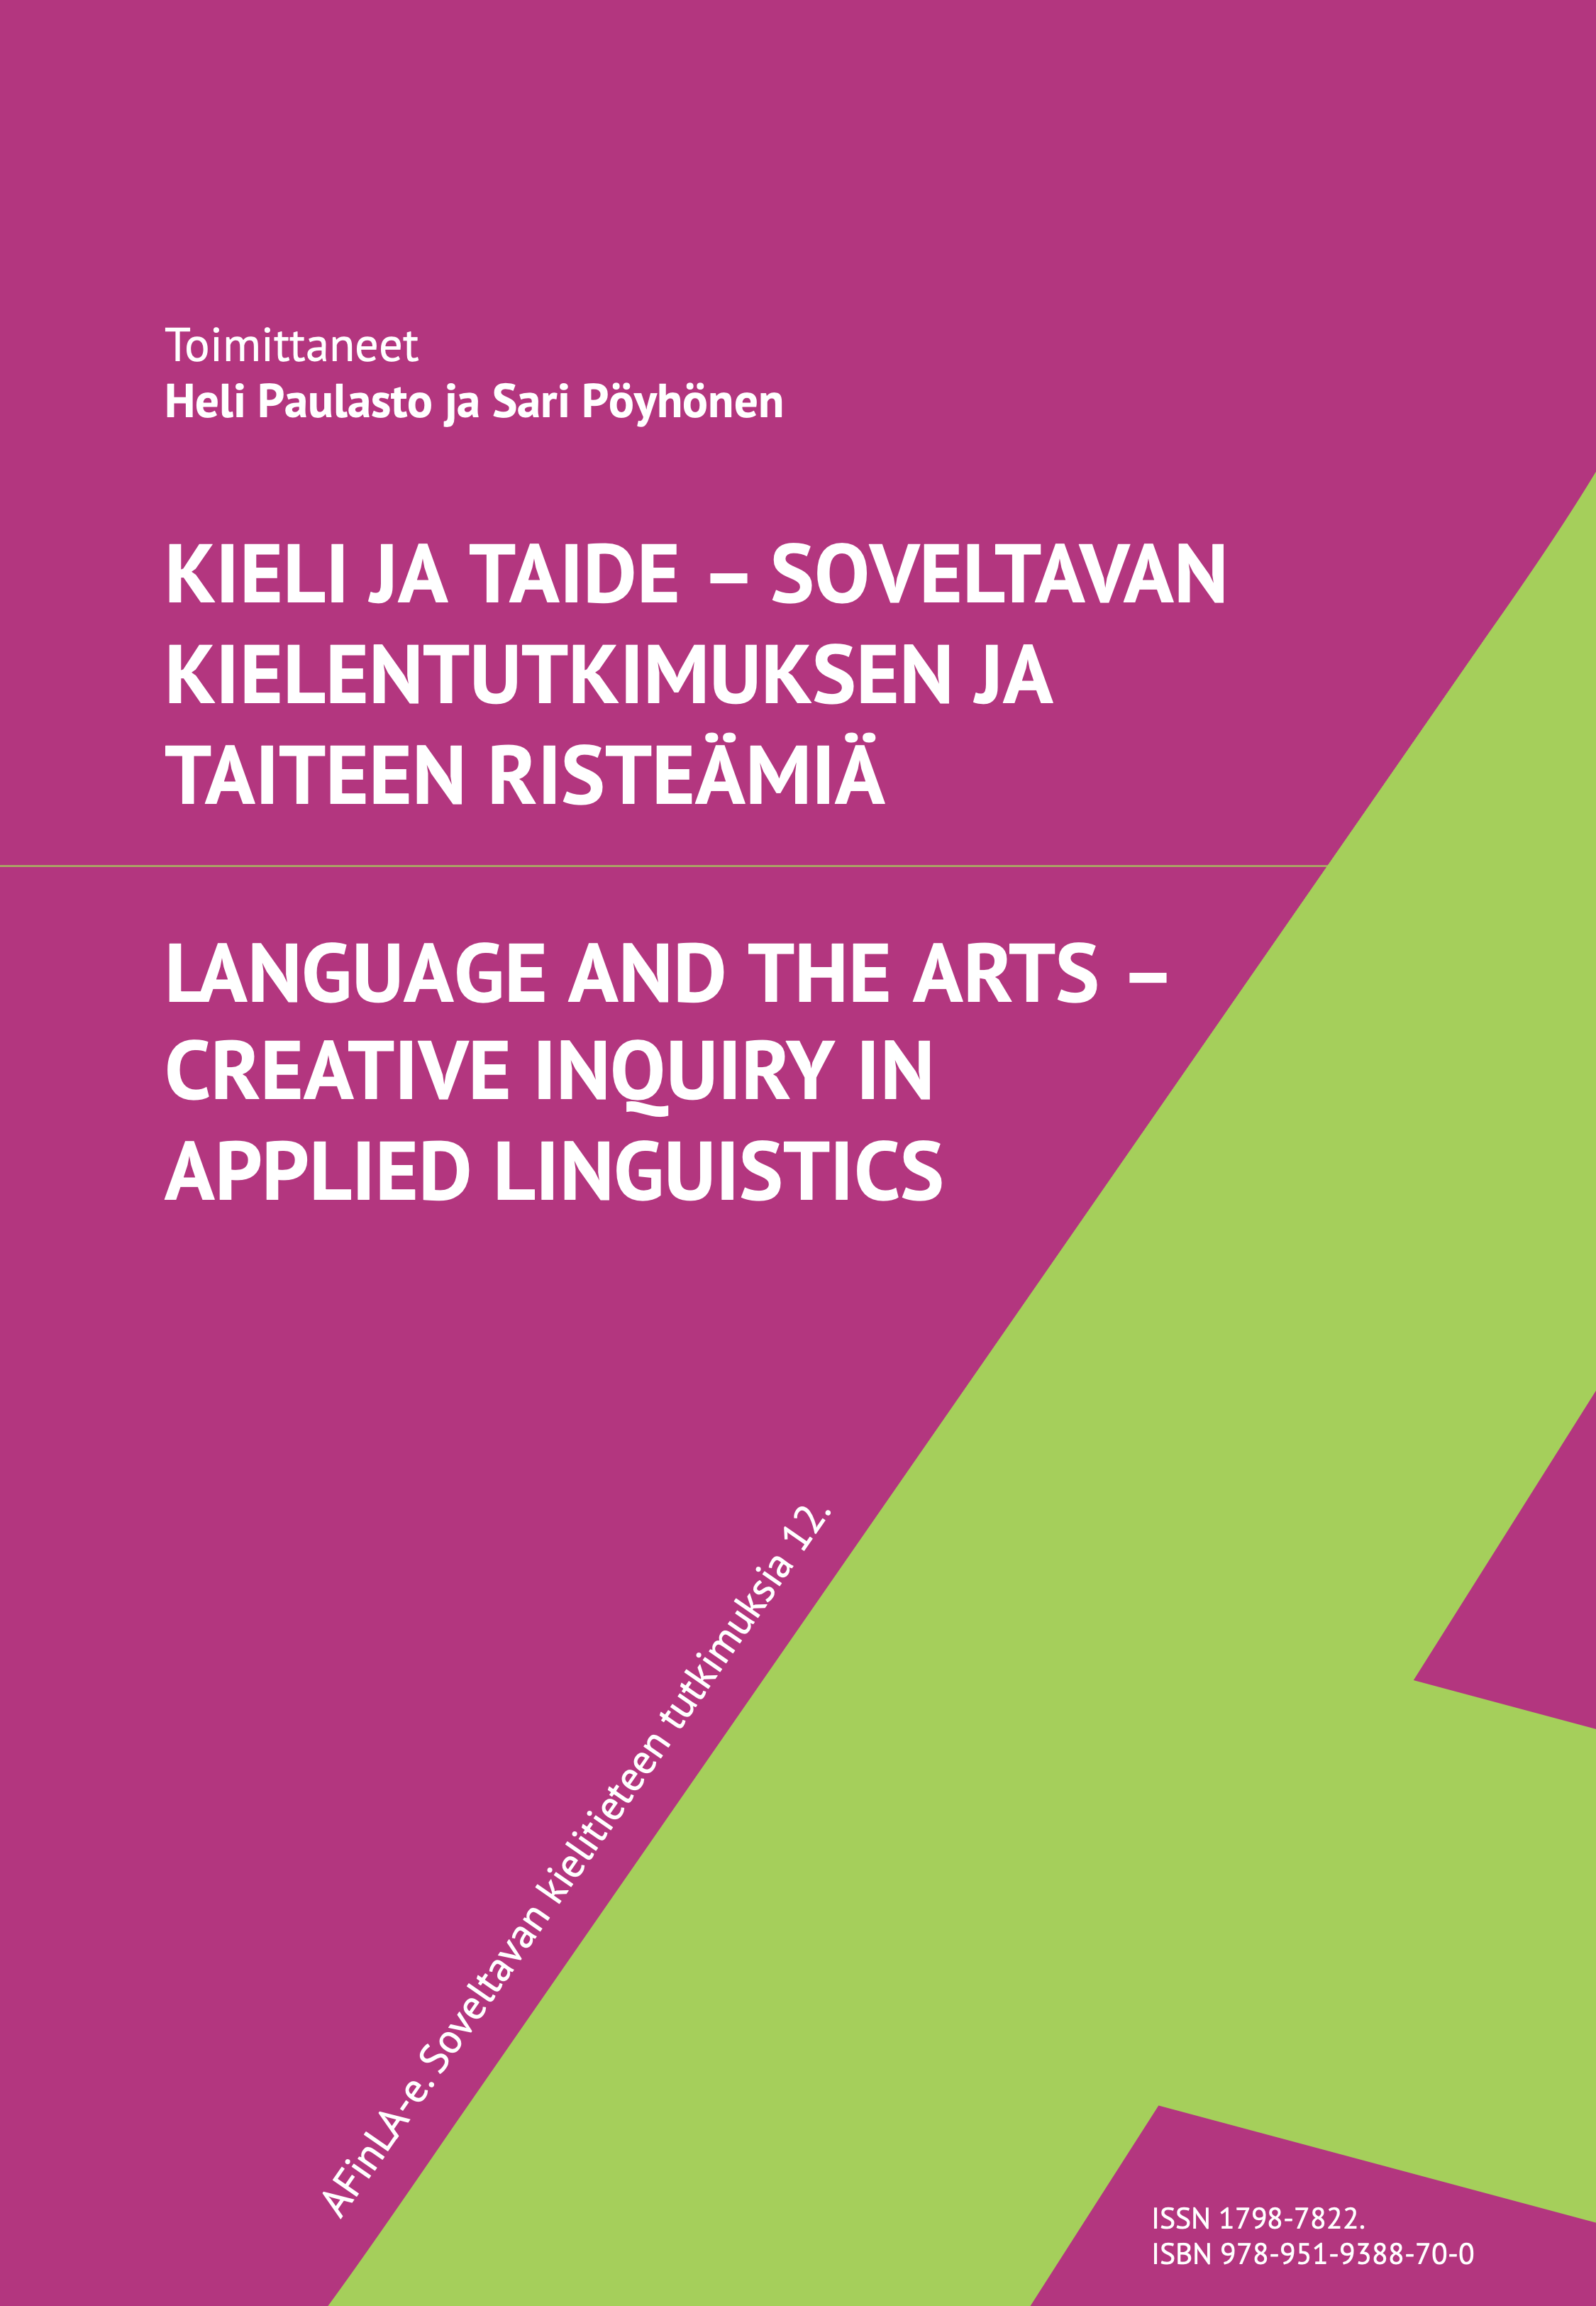 Nro 12 (2020): Kieli ja taide – soveltavan kielentutkimuksen ja taiteen risteämiä. Language and the arts – creative inquiry in applied linguistics.